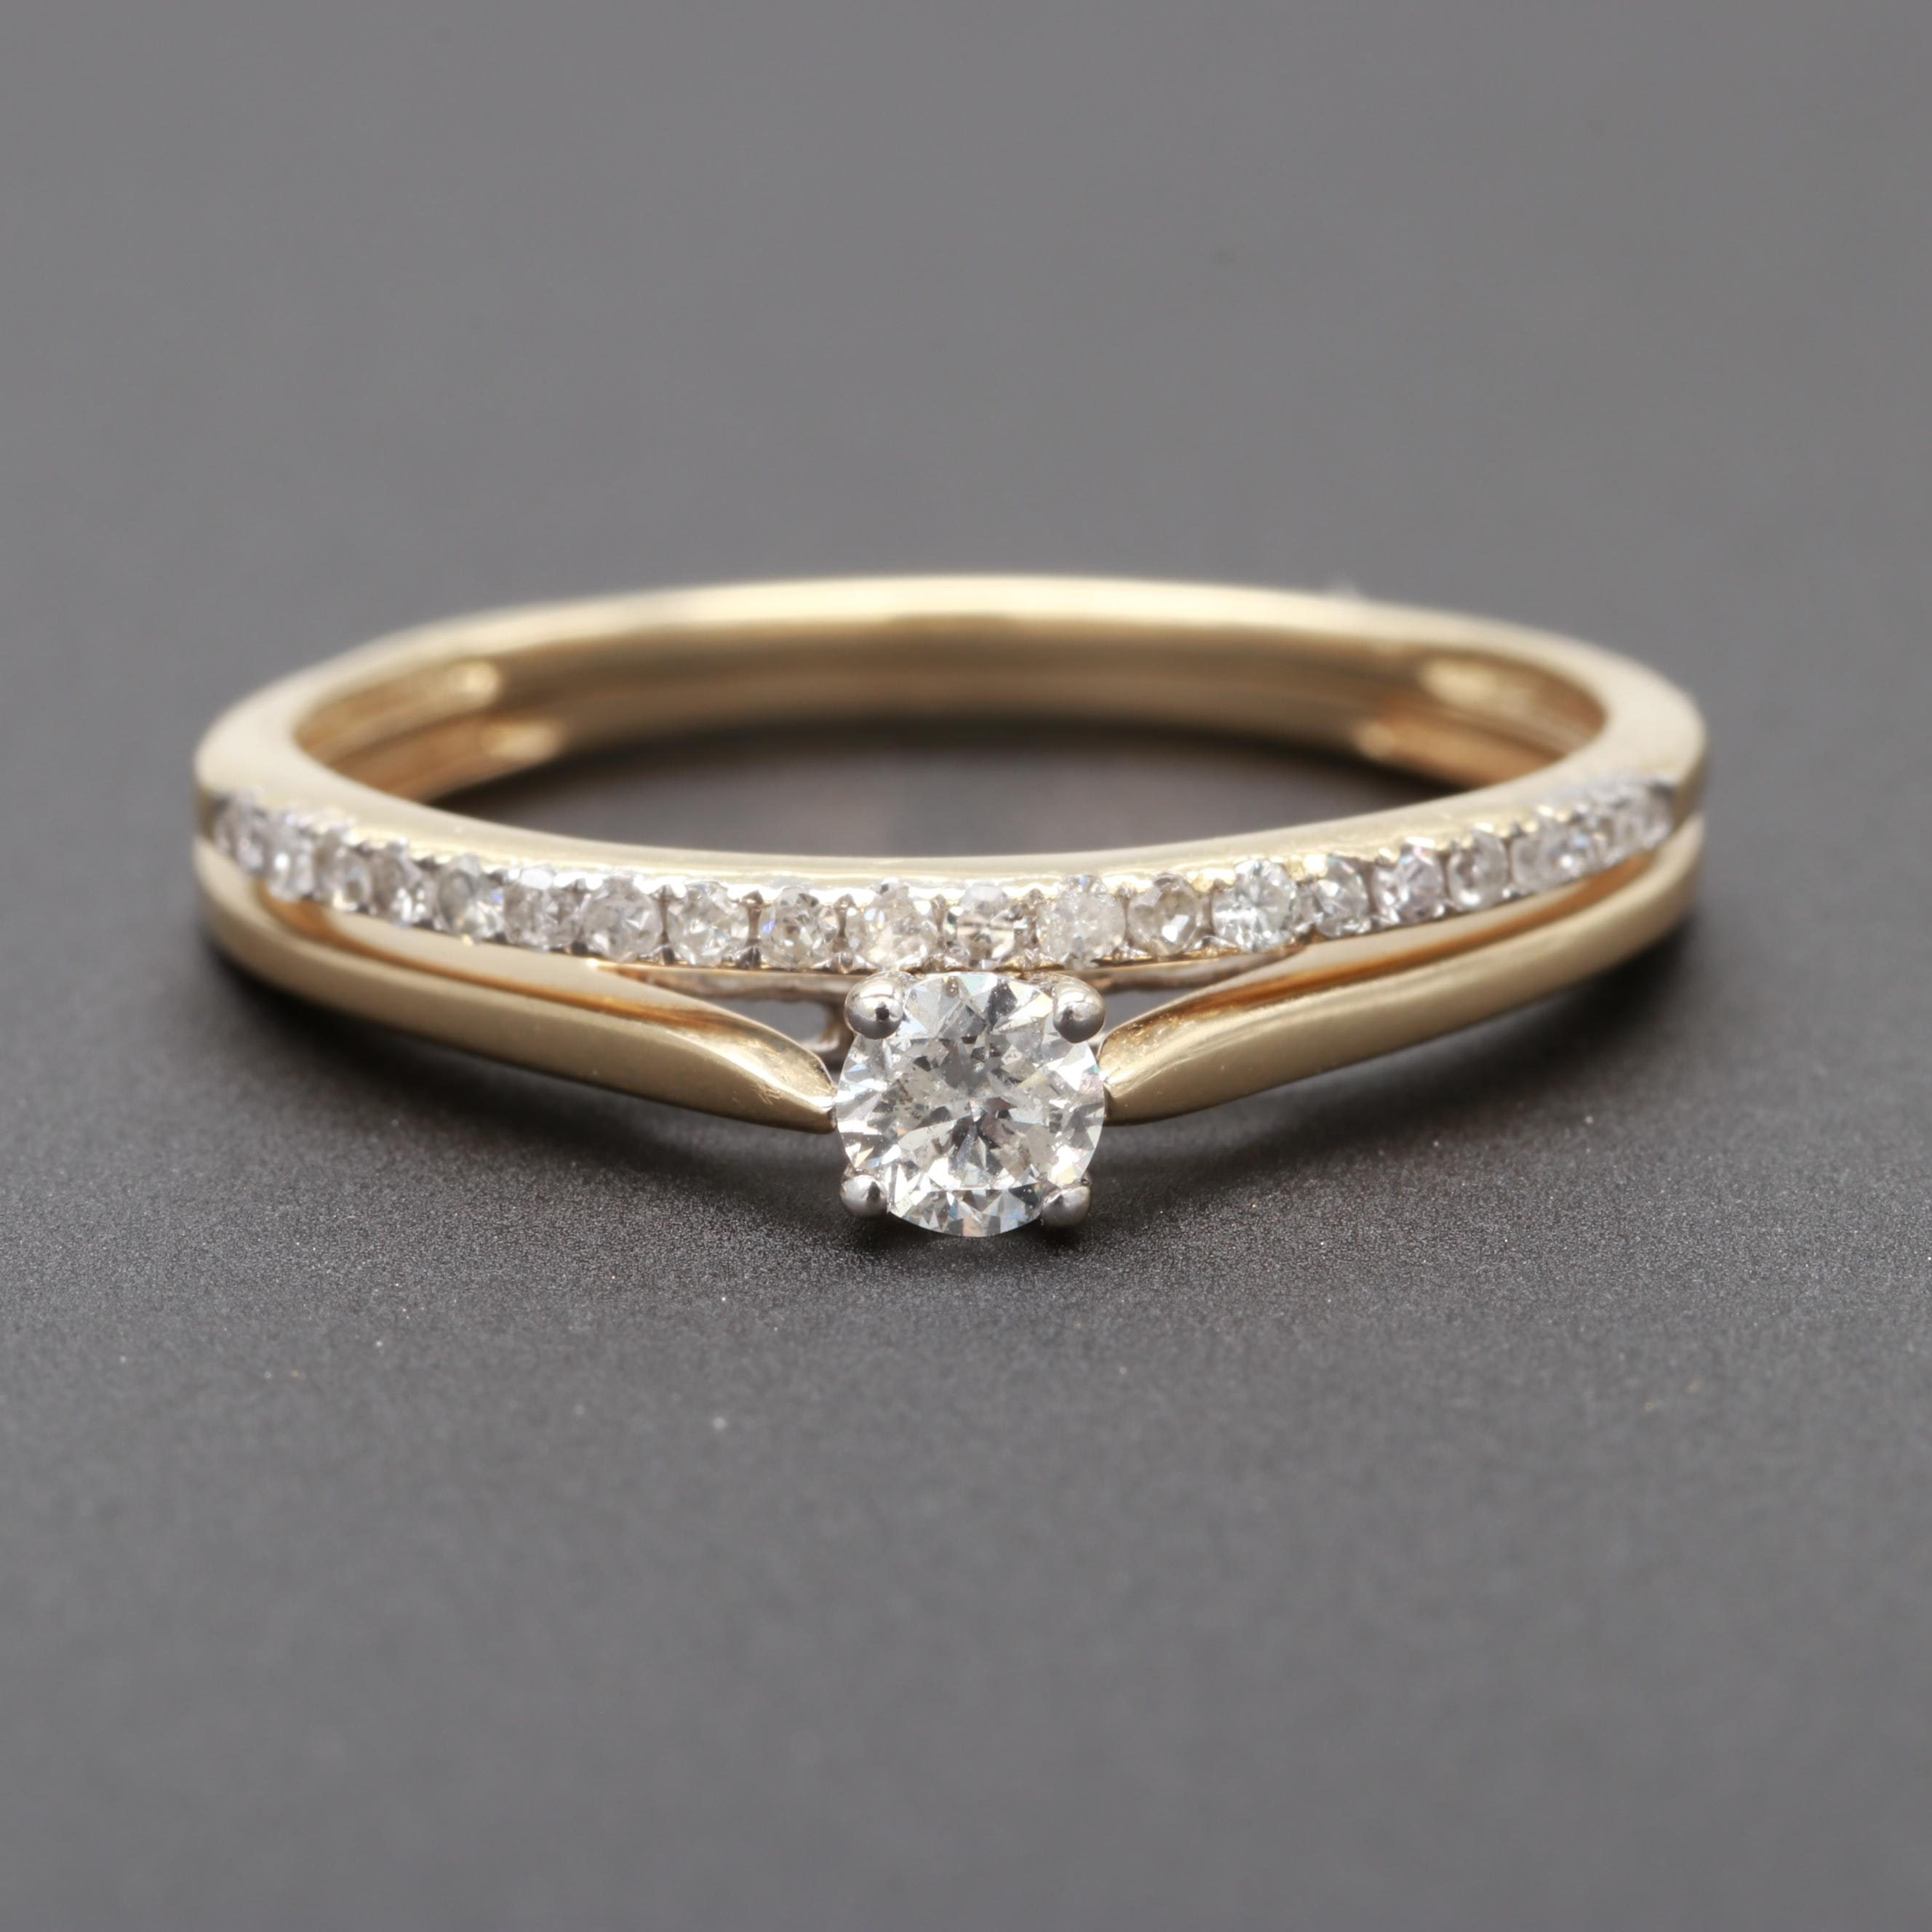 14K and 10K Yellow Gold Diamond Ring Set